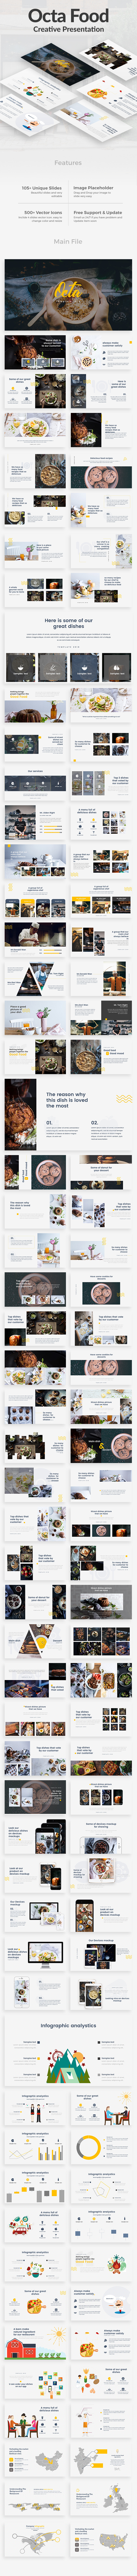 Octa Food Google Slide Template - Google Slides Presentation Templates